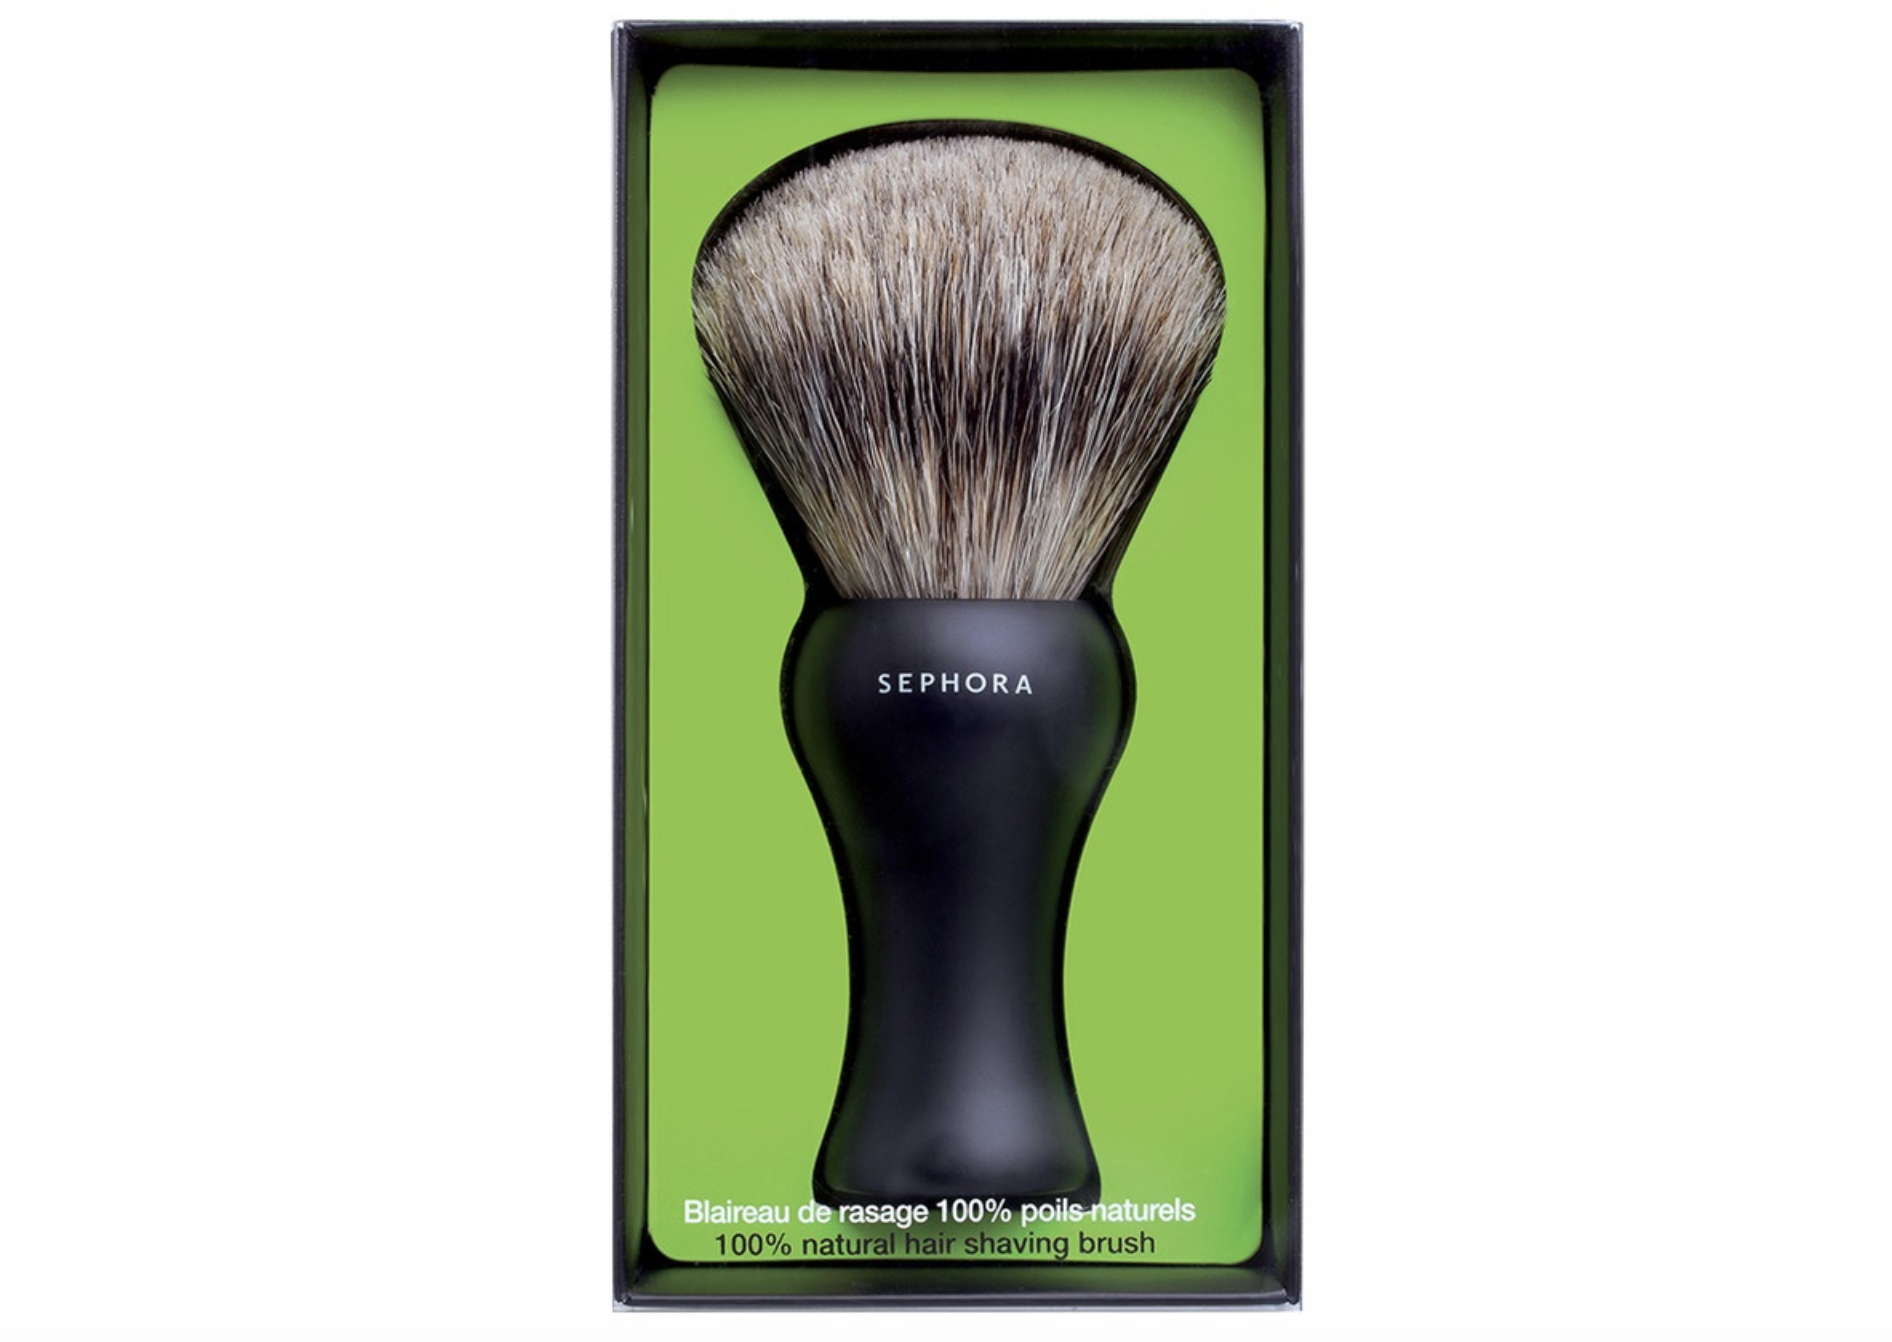 Sephora Shaving Brush Diskon 40%